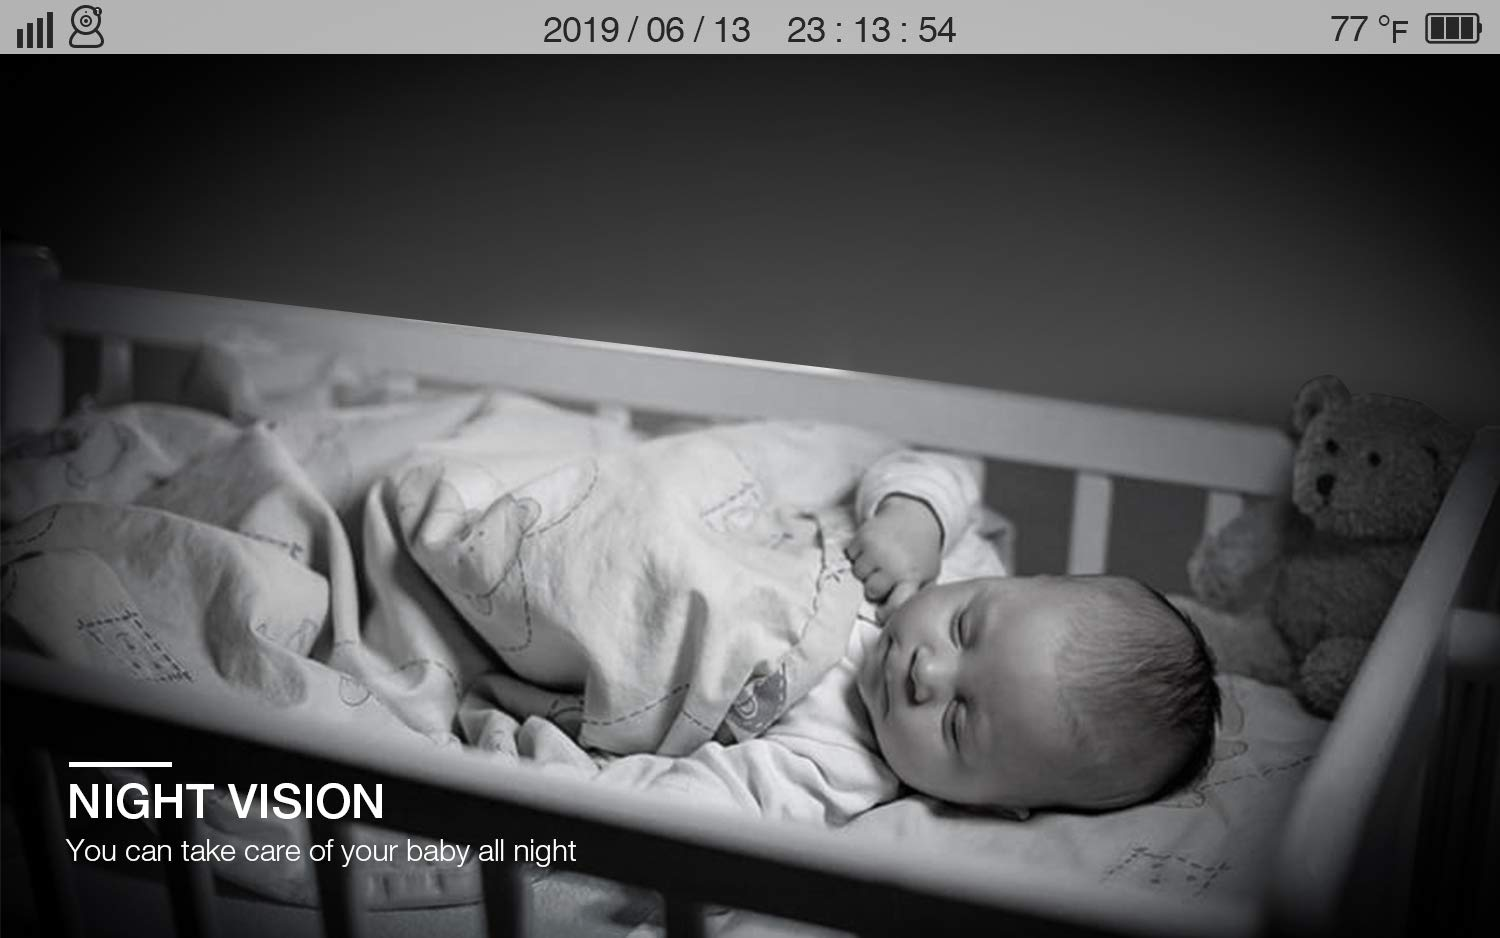 Baby Monitor, BOIFUN Baby Video Camera with 5'' 1280x720P HD Screen 2000mAh Rechargeable Battery with VOX Night Vision Temperature Monitor Two-Way Talk 355 Degree Remote Control Camera Baby/Elder/Pet BOIFUN Sleep Mode & Night Vision----In Sleep mode, The screen on the mother unit is black. Screen will light up when baby starts crying. Night vision distance is 5 meters, so you will never miss any moment of your baby, and it frees yourself from the hustle and bustle. You will be able to have your own time to read, watch TV, or even enjoy a couple of drinks with your husband. Bring you lots of fun. 2000mAh Battery----2000mAh high-capacity battery (mother unit), lasts up to 6 hours with full functions, and 20 hours in sleep mode, from testing results. Let you have longer time get rid of the shackles of the wires. Bring you longer time of fun. 300Meters Extra-Large Range----300m signal coverage area (outdoor test) allows you to cook happily downstairs, enjoy the sun in the pool, or even have a relaxing BBQ time with friends in terrace. Bring you bigger fun. 6